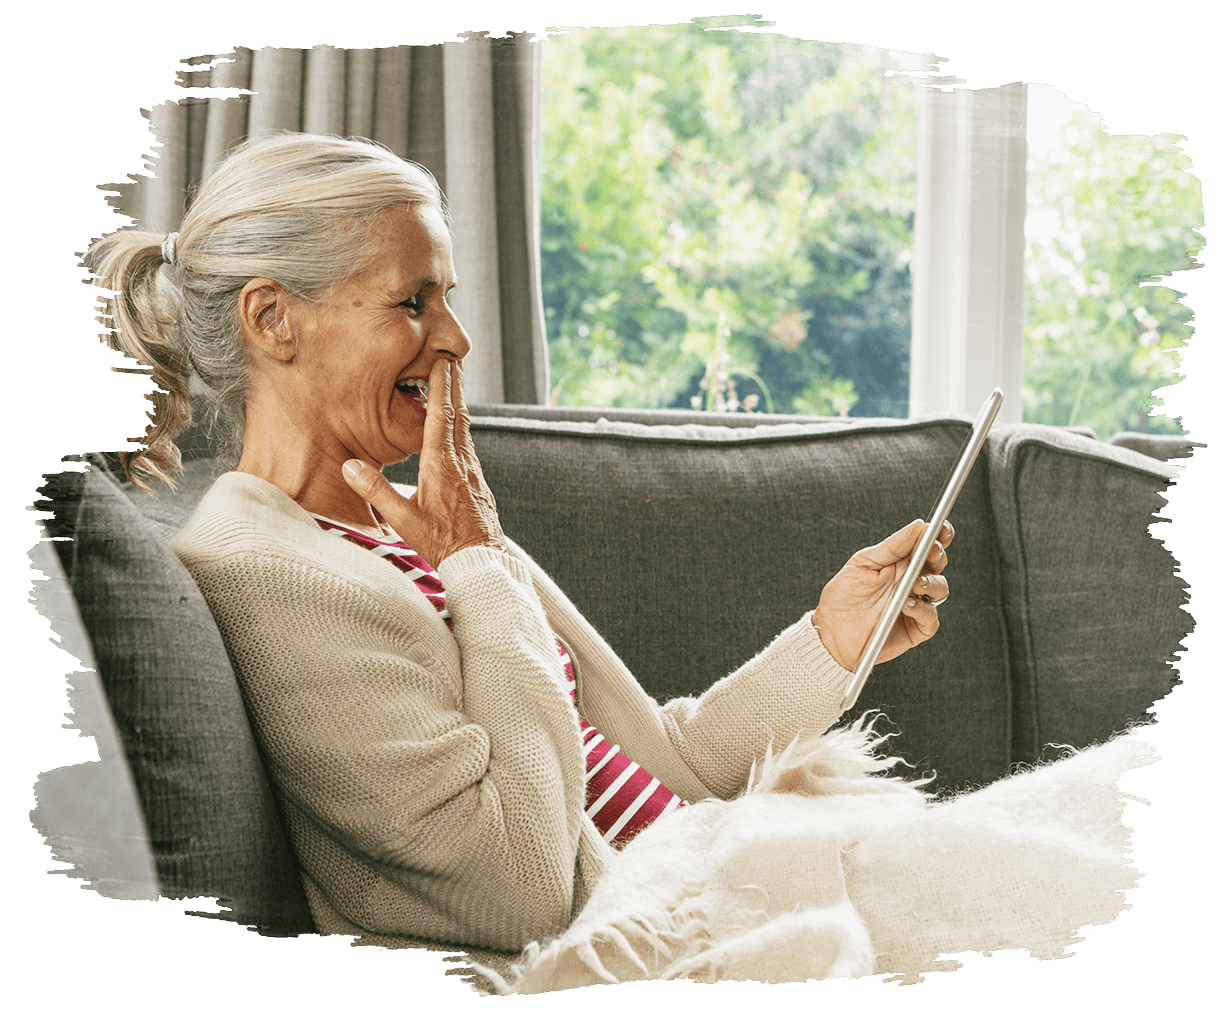 This is an image of a elderly woman  lying on the couch looking a an iPad